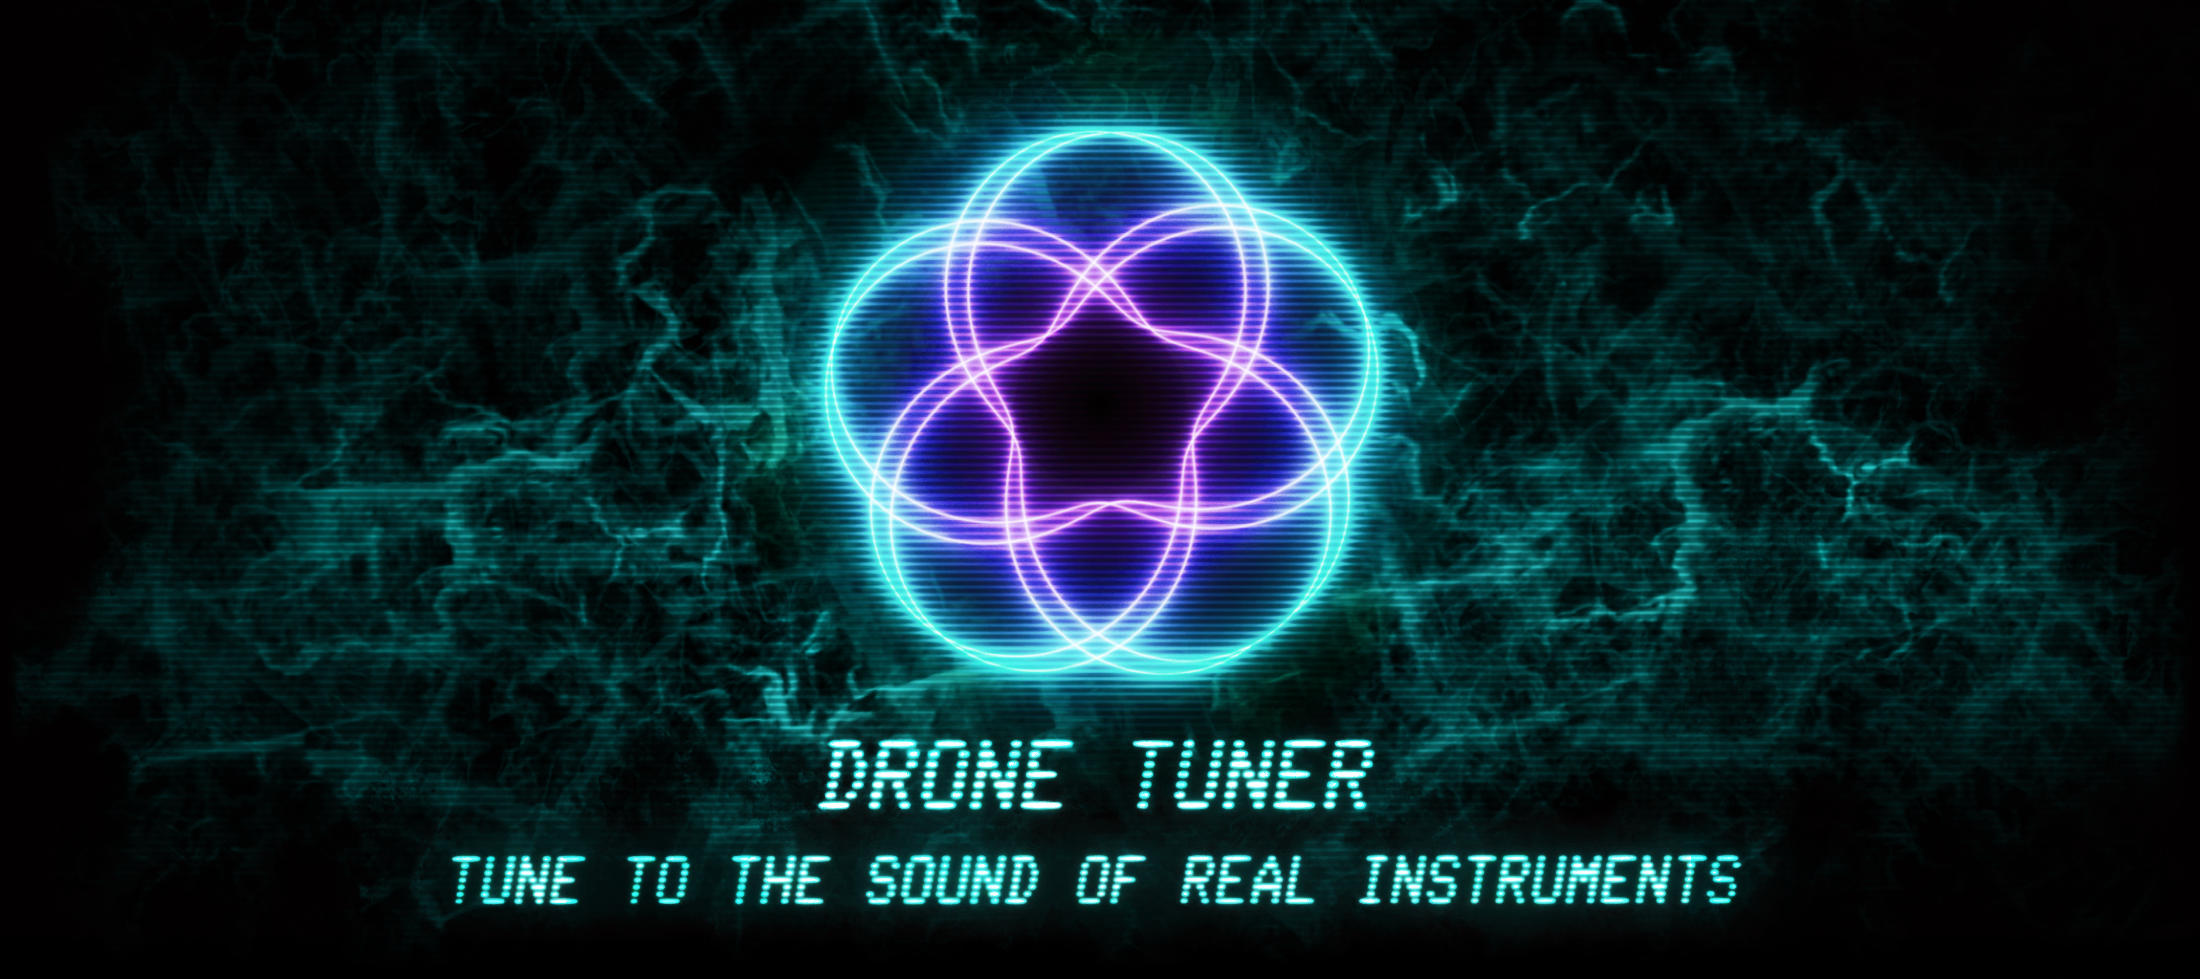 DRONE TUNER